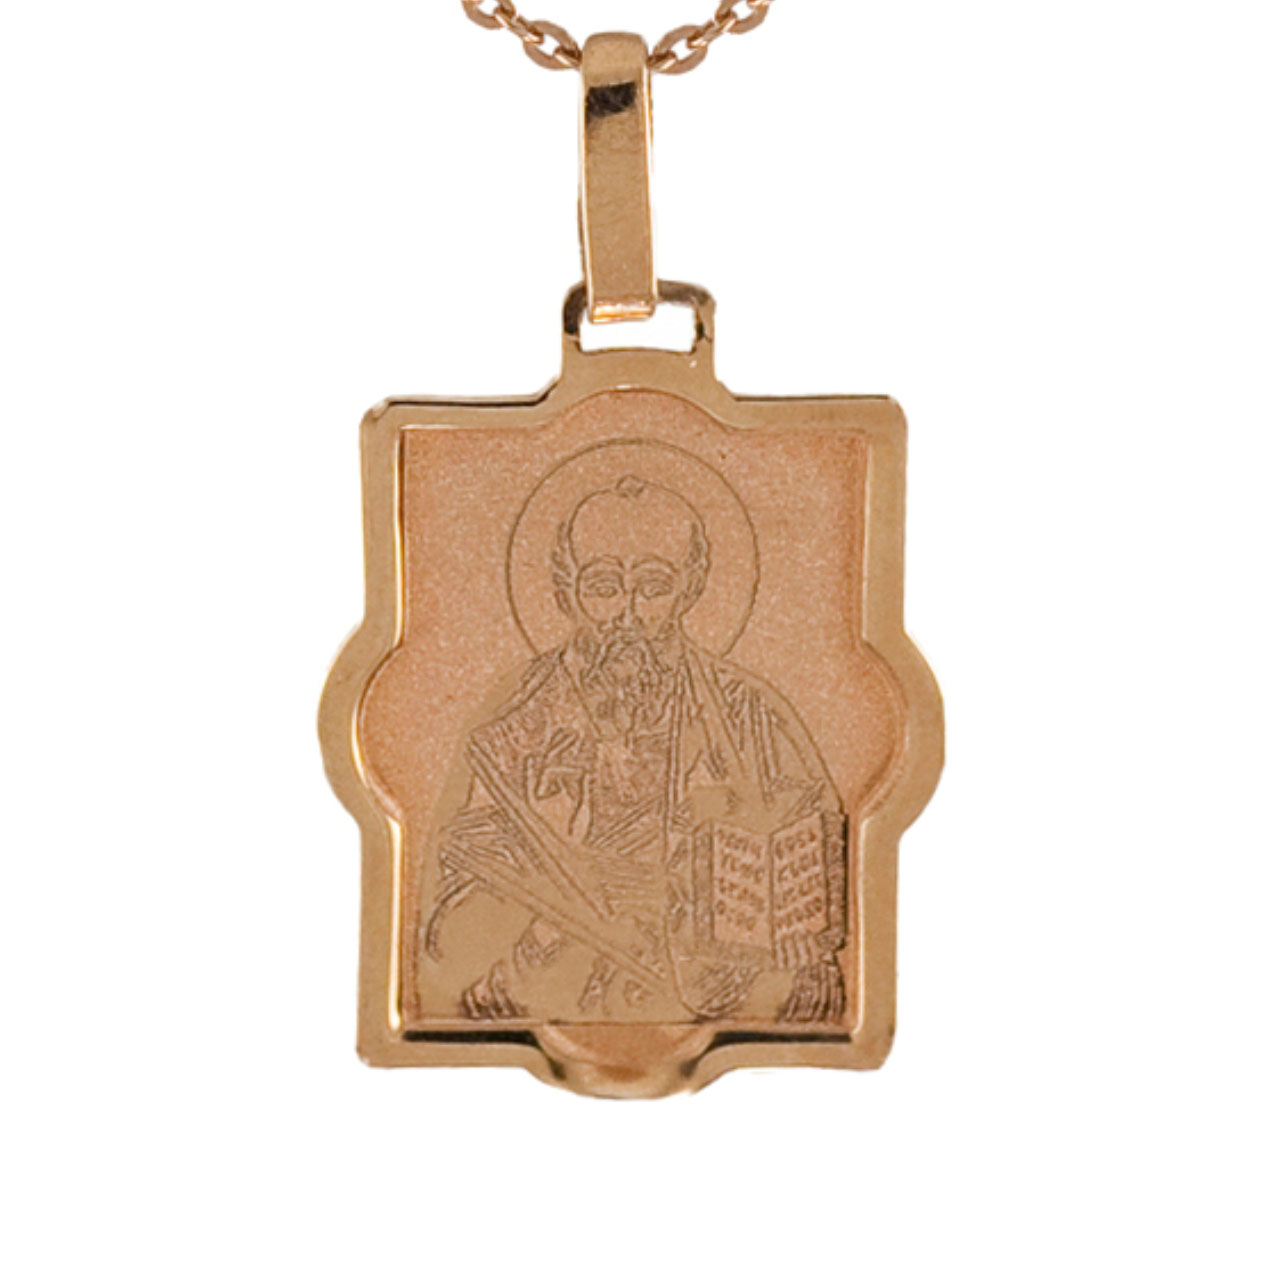 Icon pendant John the Apostle 1